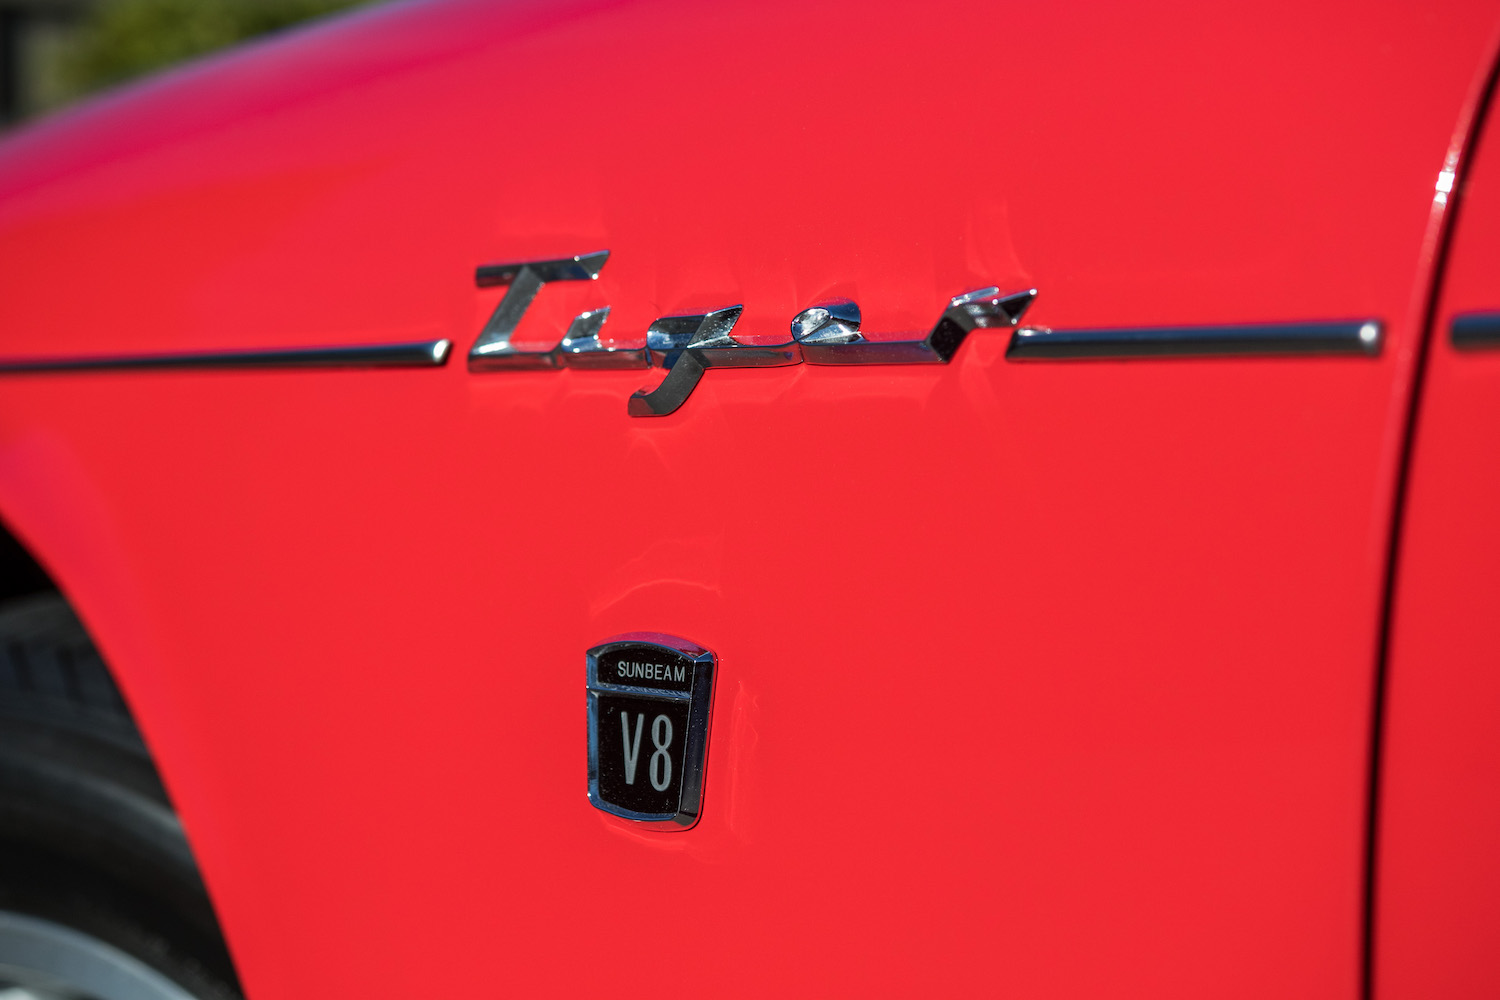 red sunbeam tiger rear front side panel decal detail